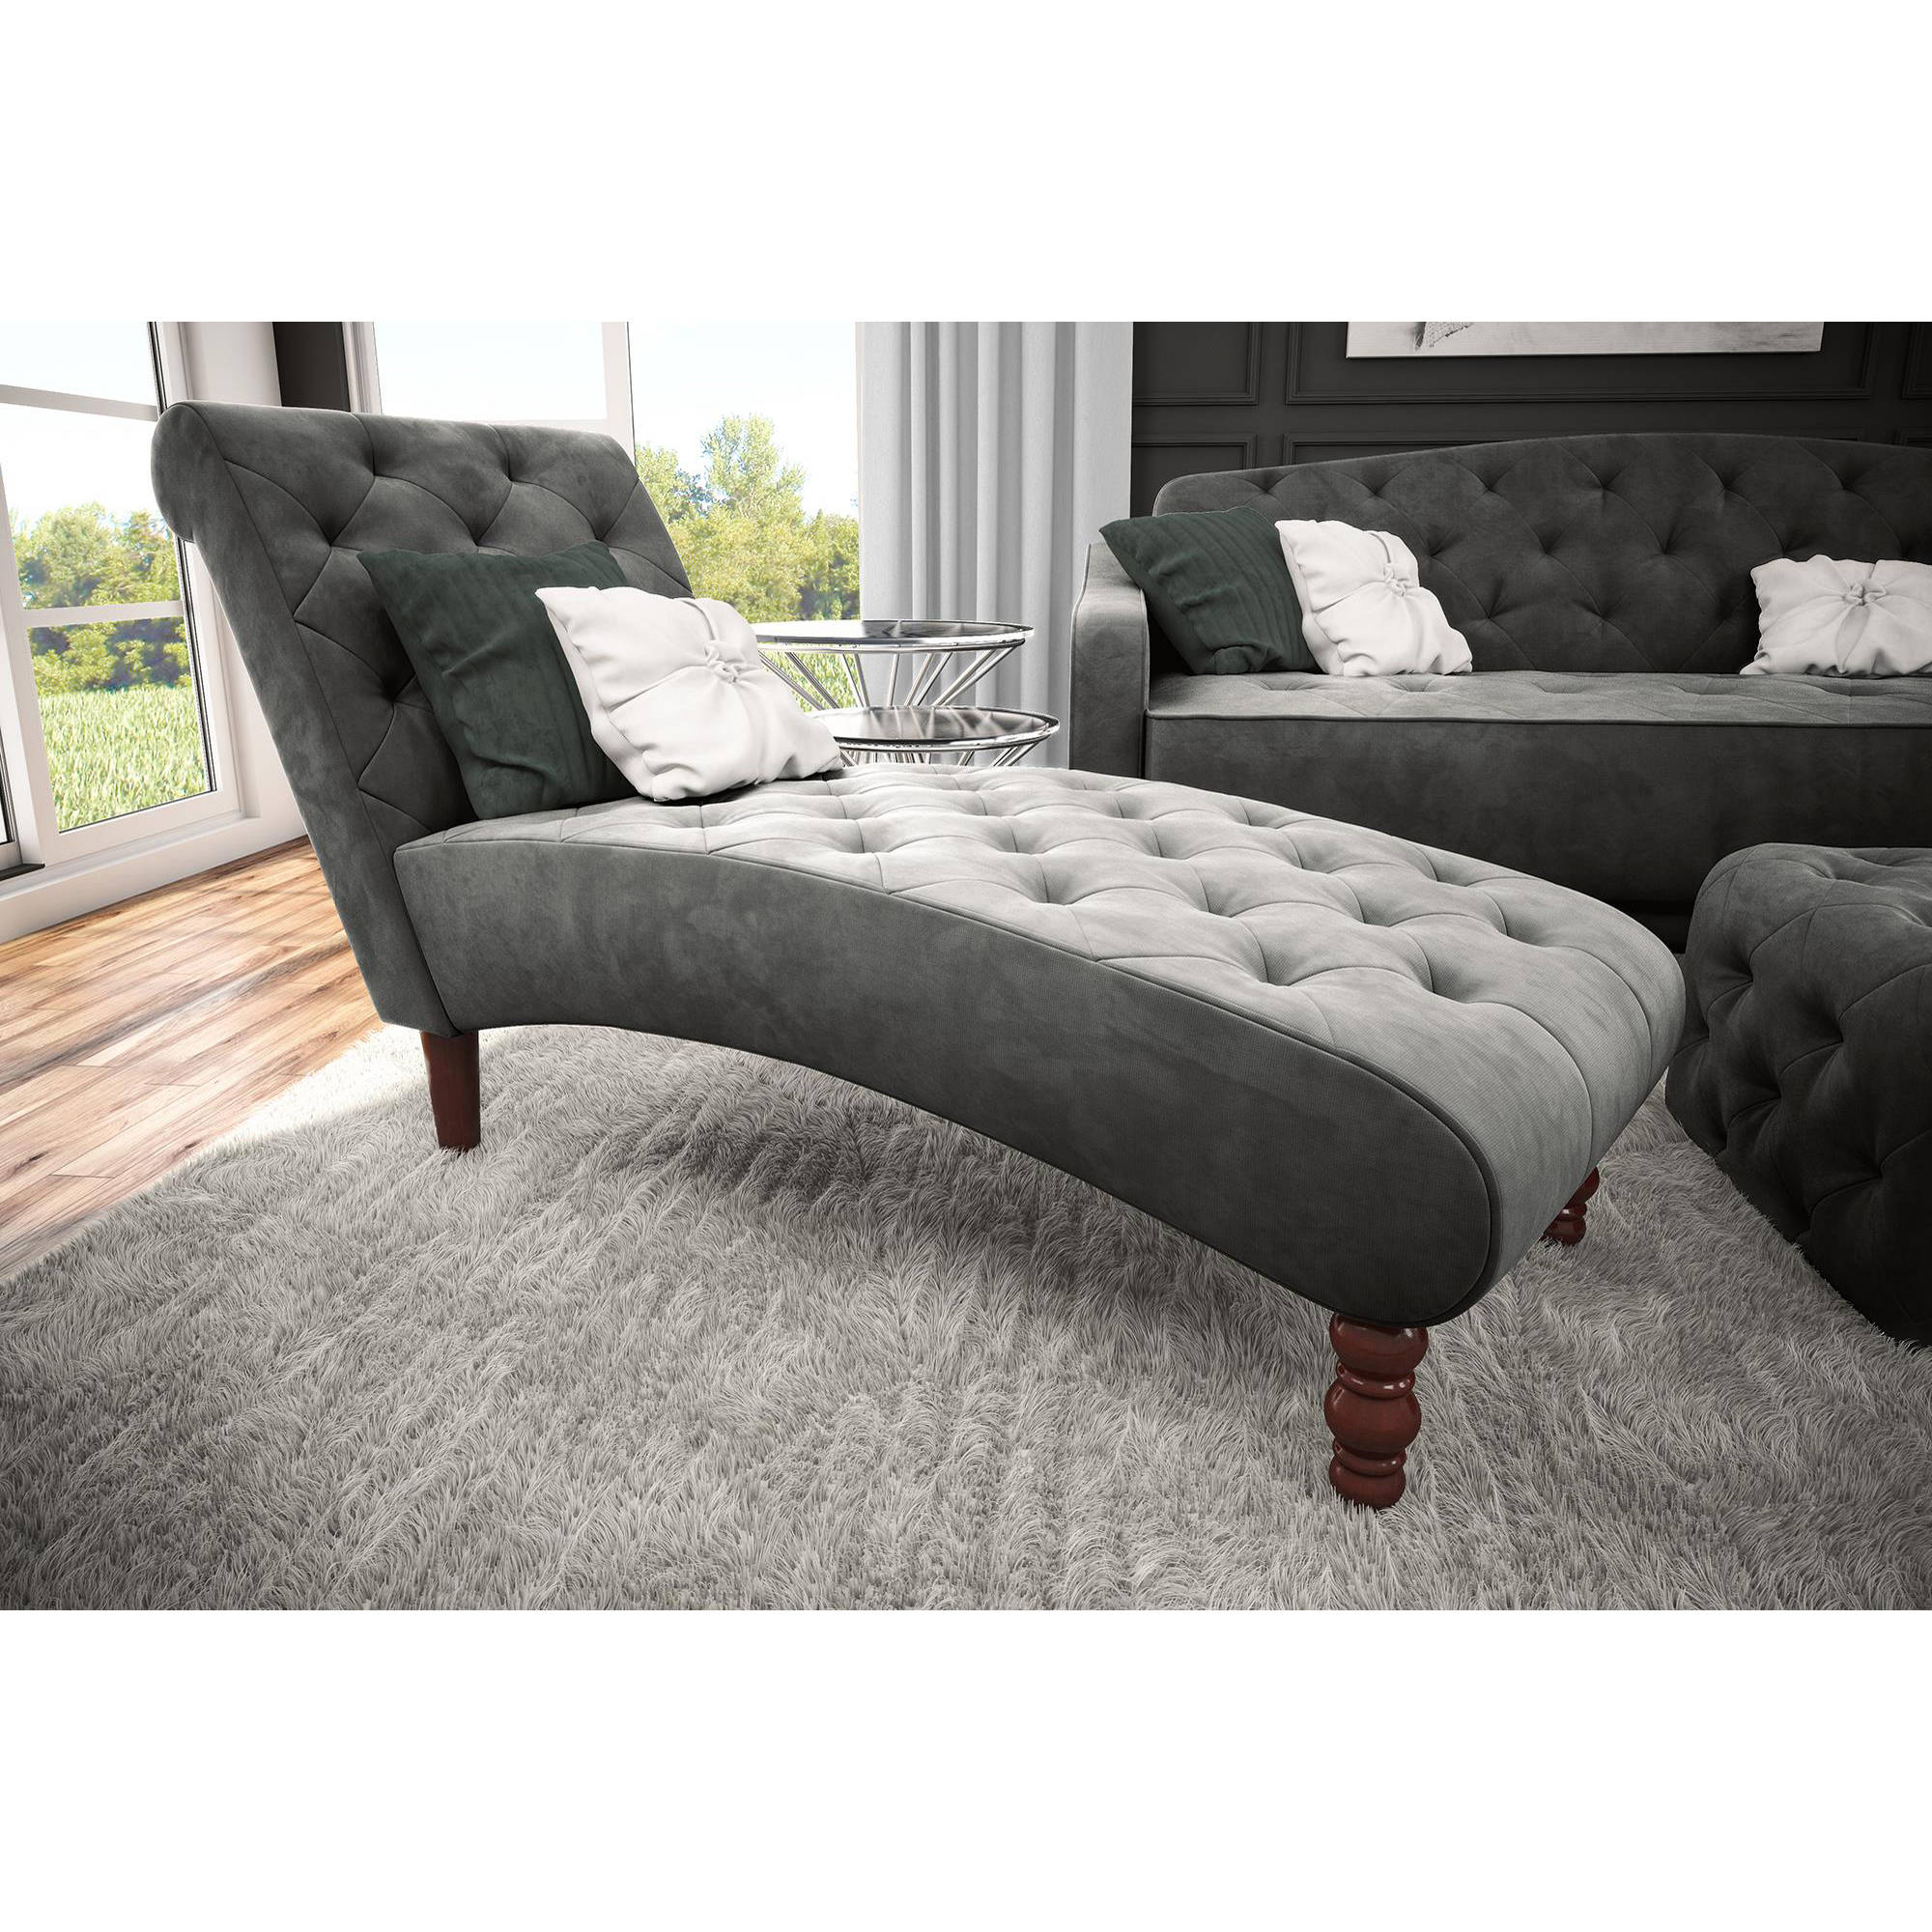 modern relax to indoor lounges back lie you lounge brown and chaise invite leather